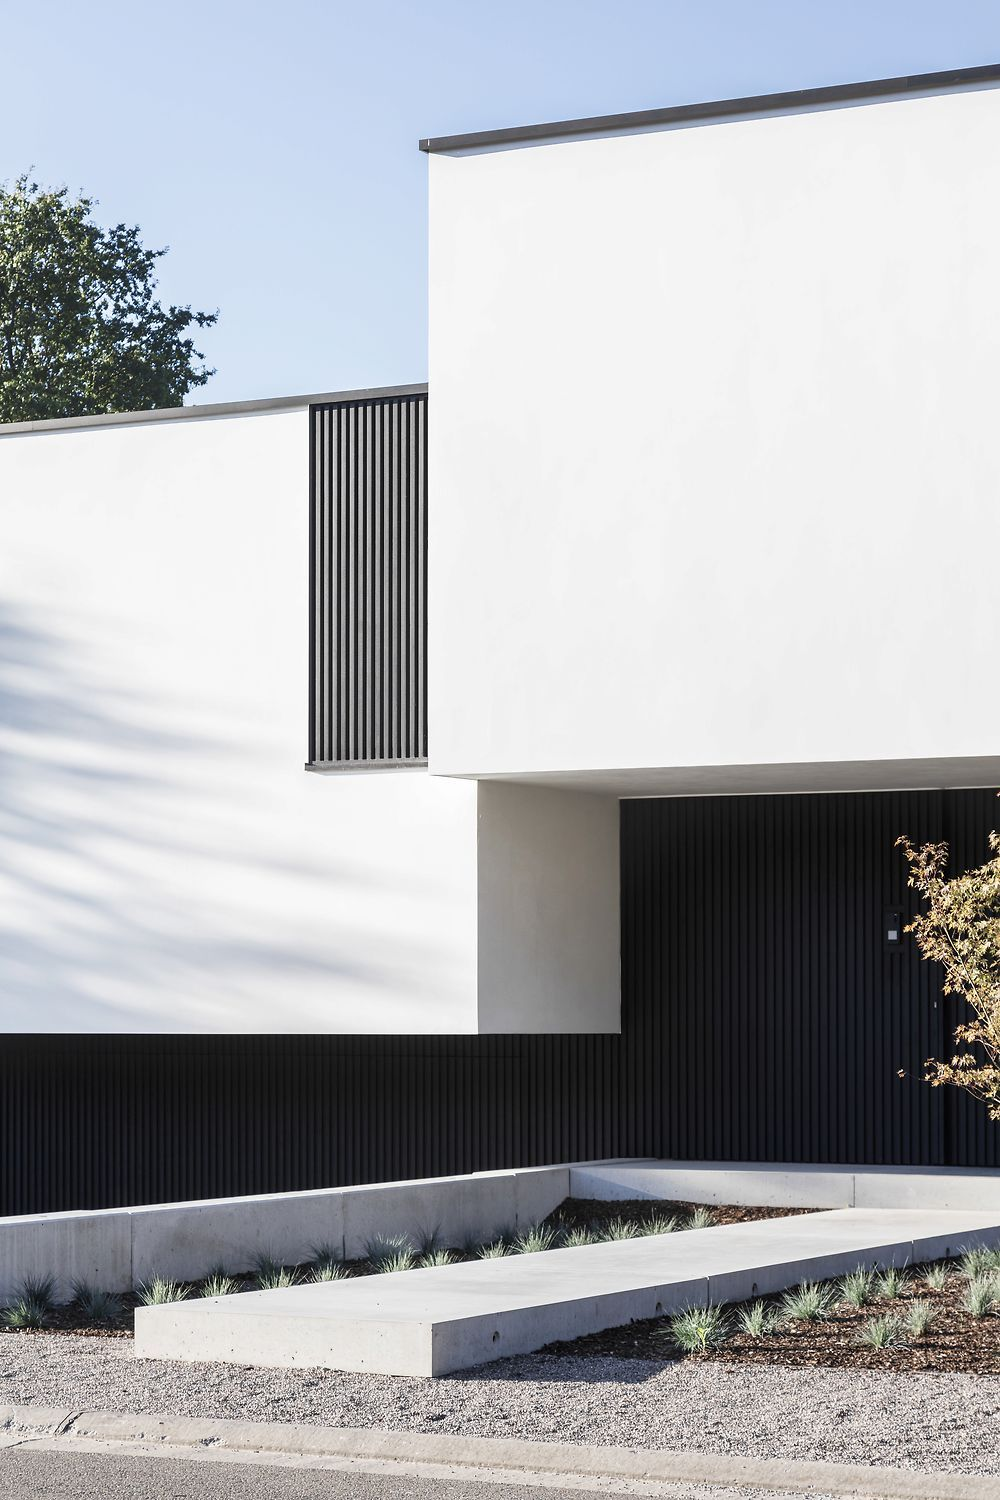 Home DW | Architects, Architecture and Facades